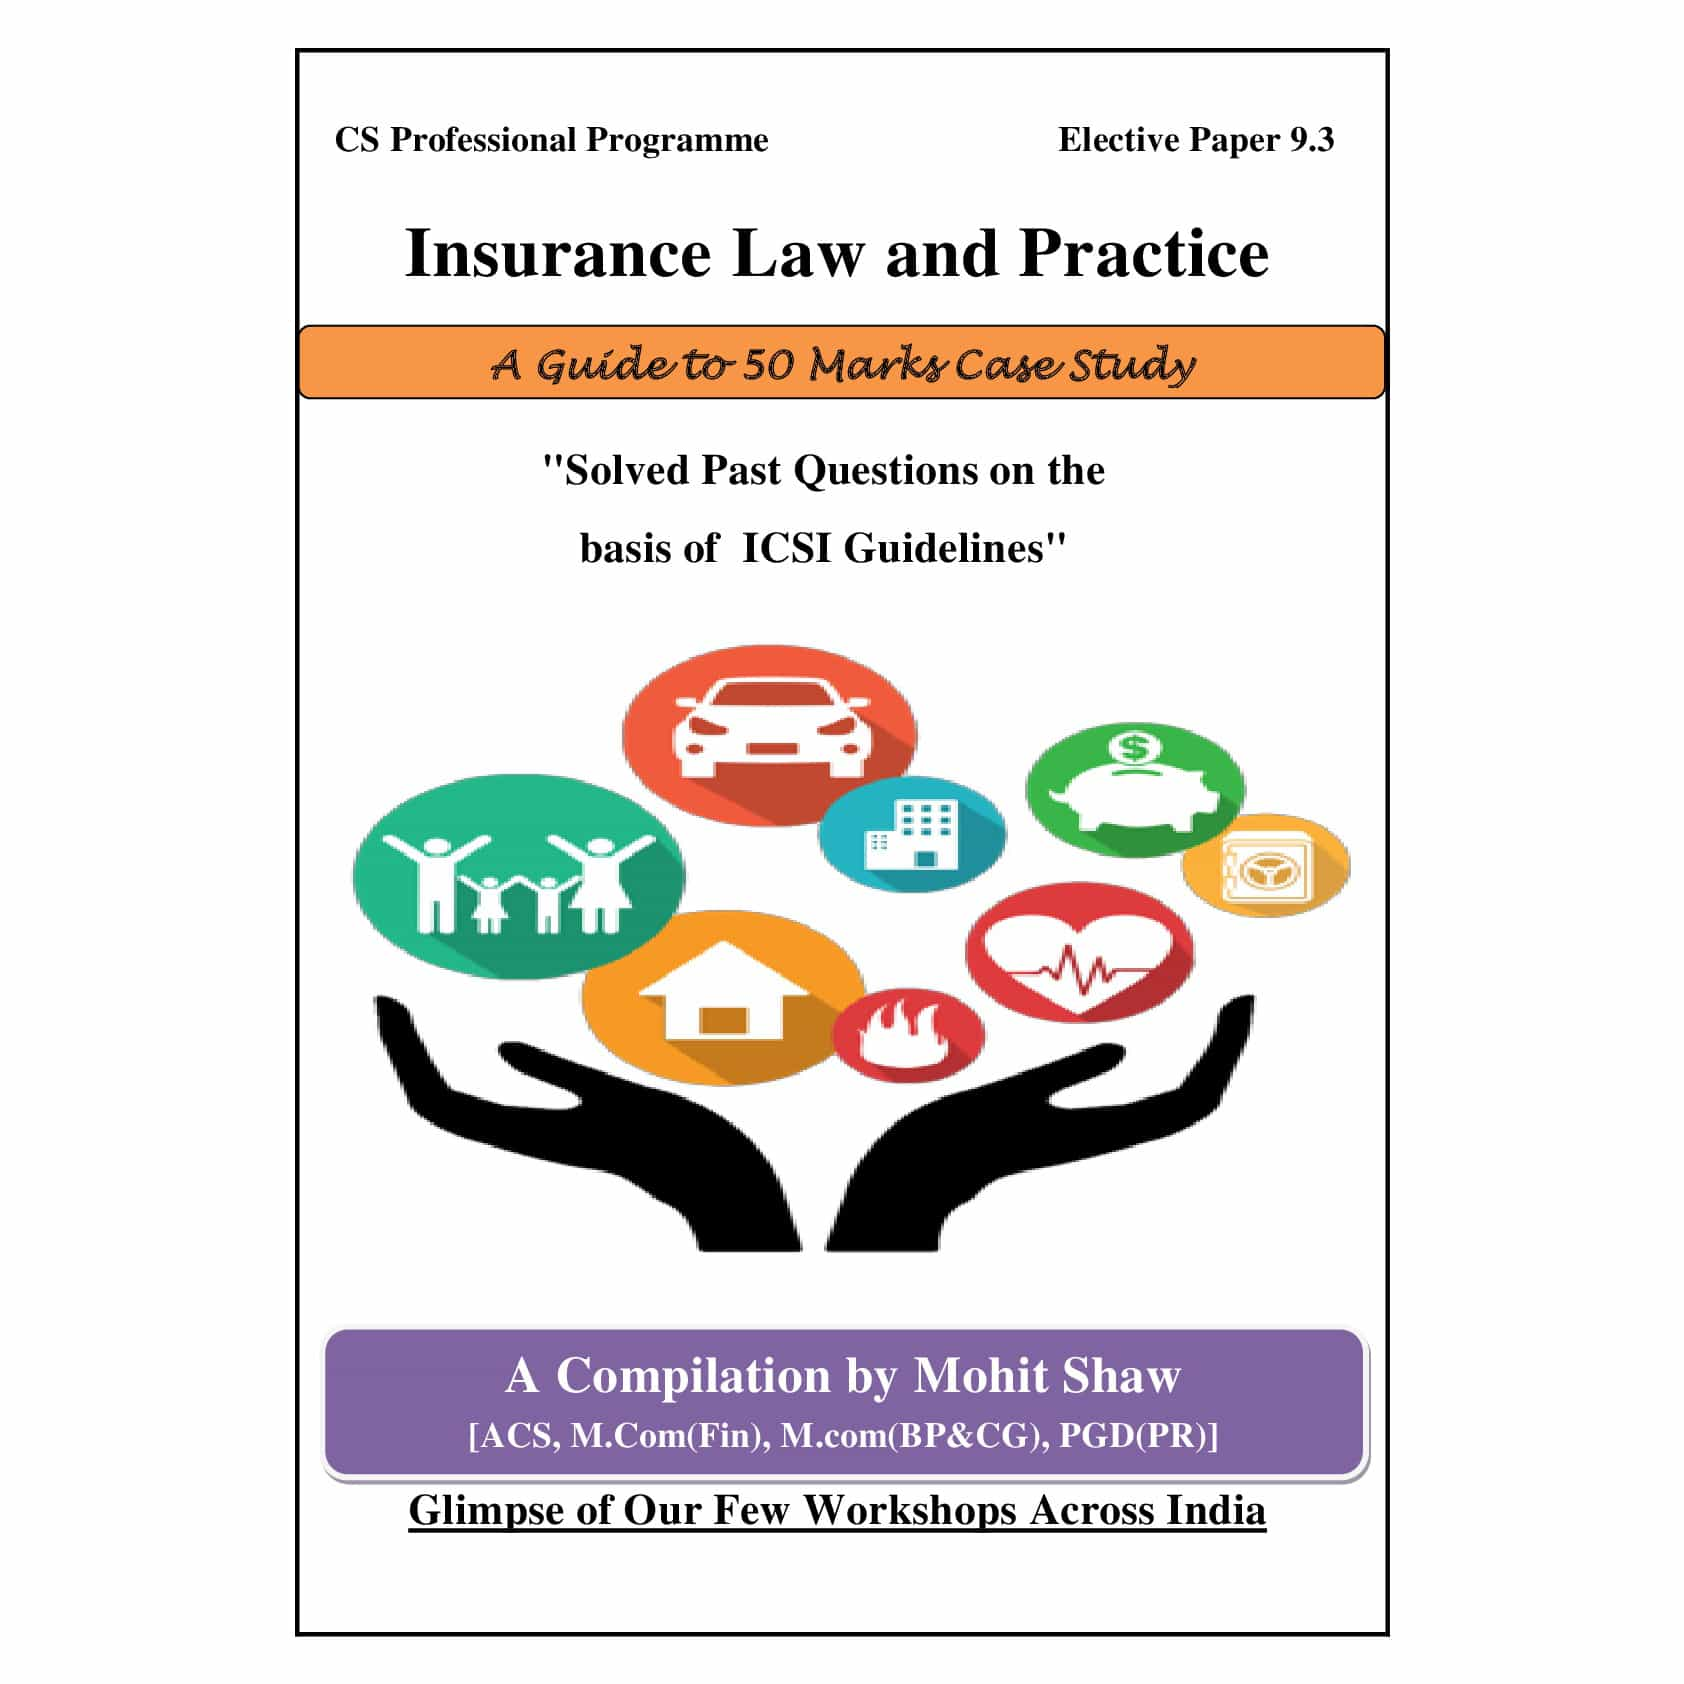 cs professional insurance law case study book elective subject rh cscartindia com